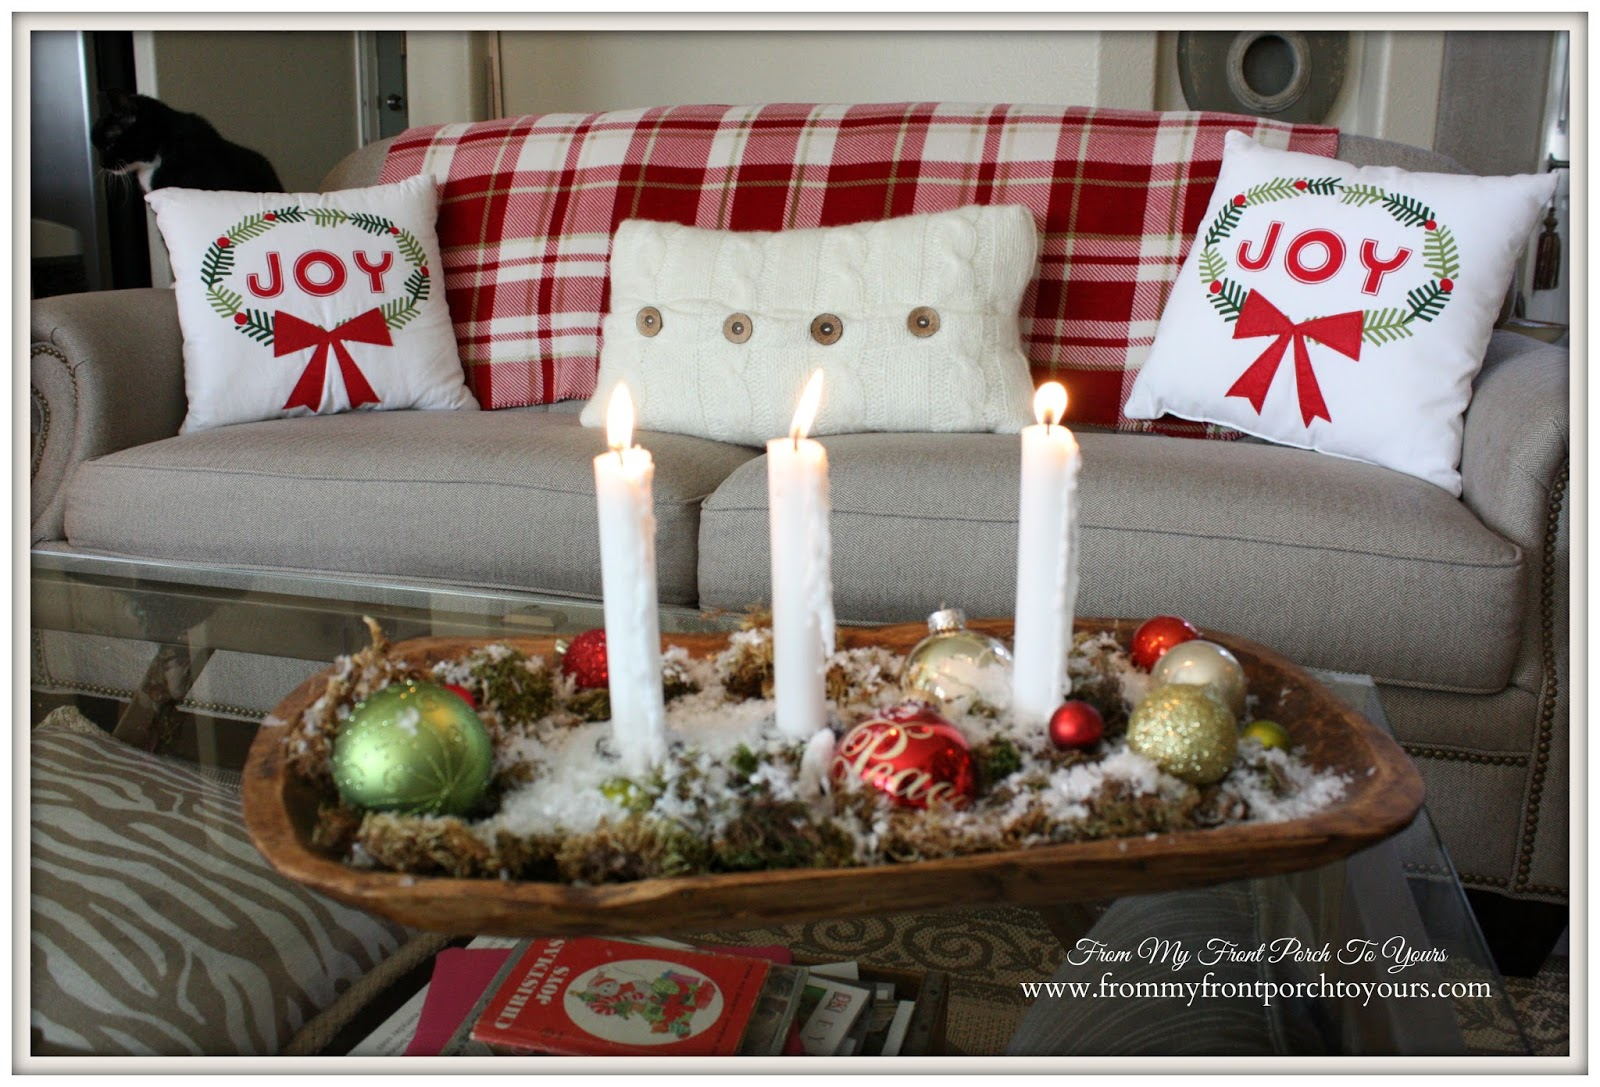 Farmhouse -Vintage -Christmas- Living Room-Joy-Pillows- From My Front Porch To Yours